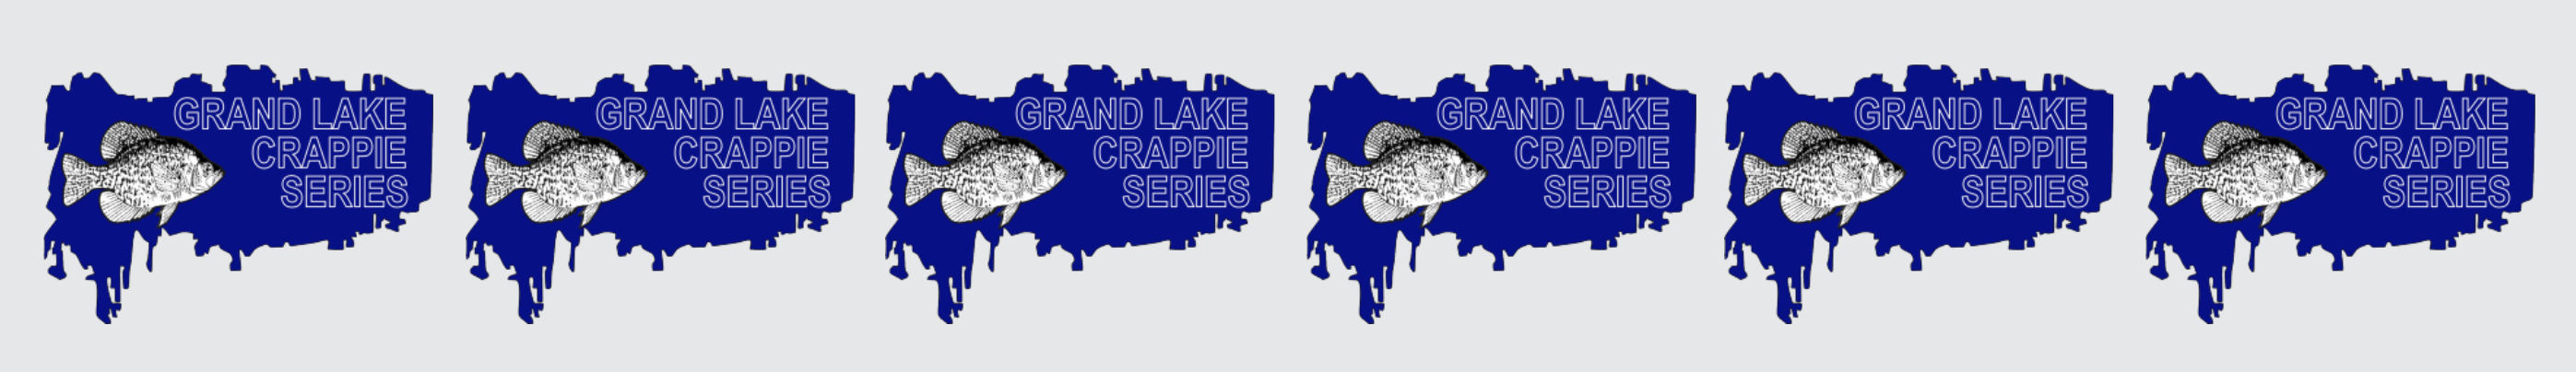 Grand Lake Crappie Series Logo